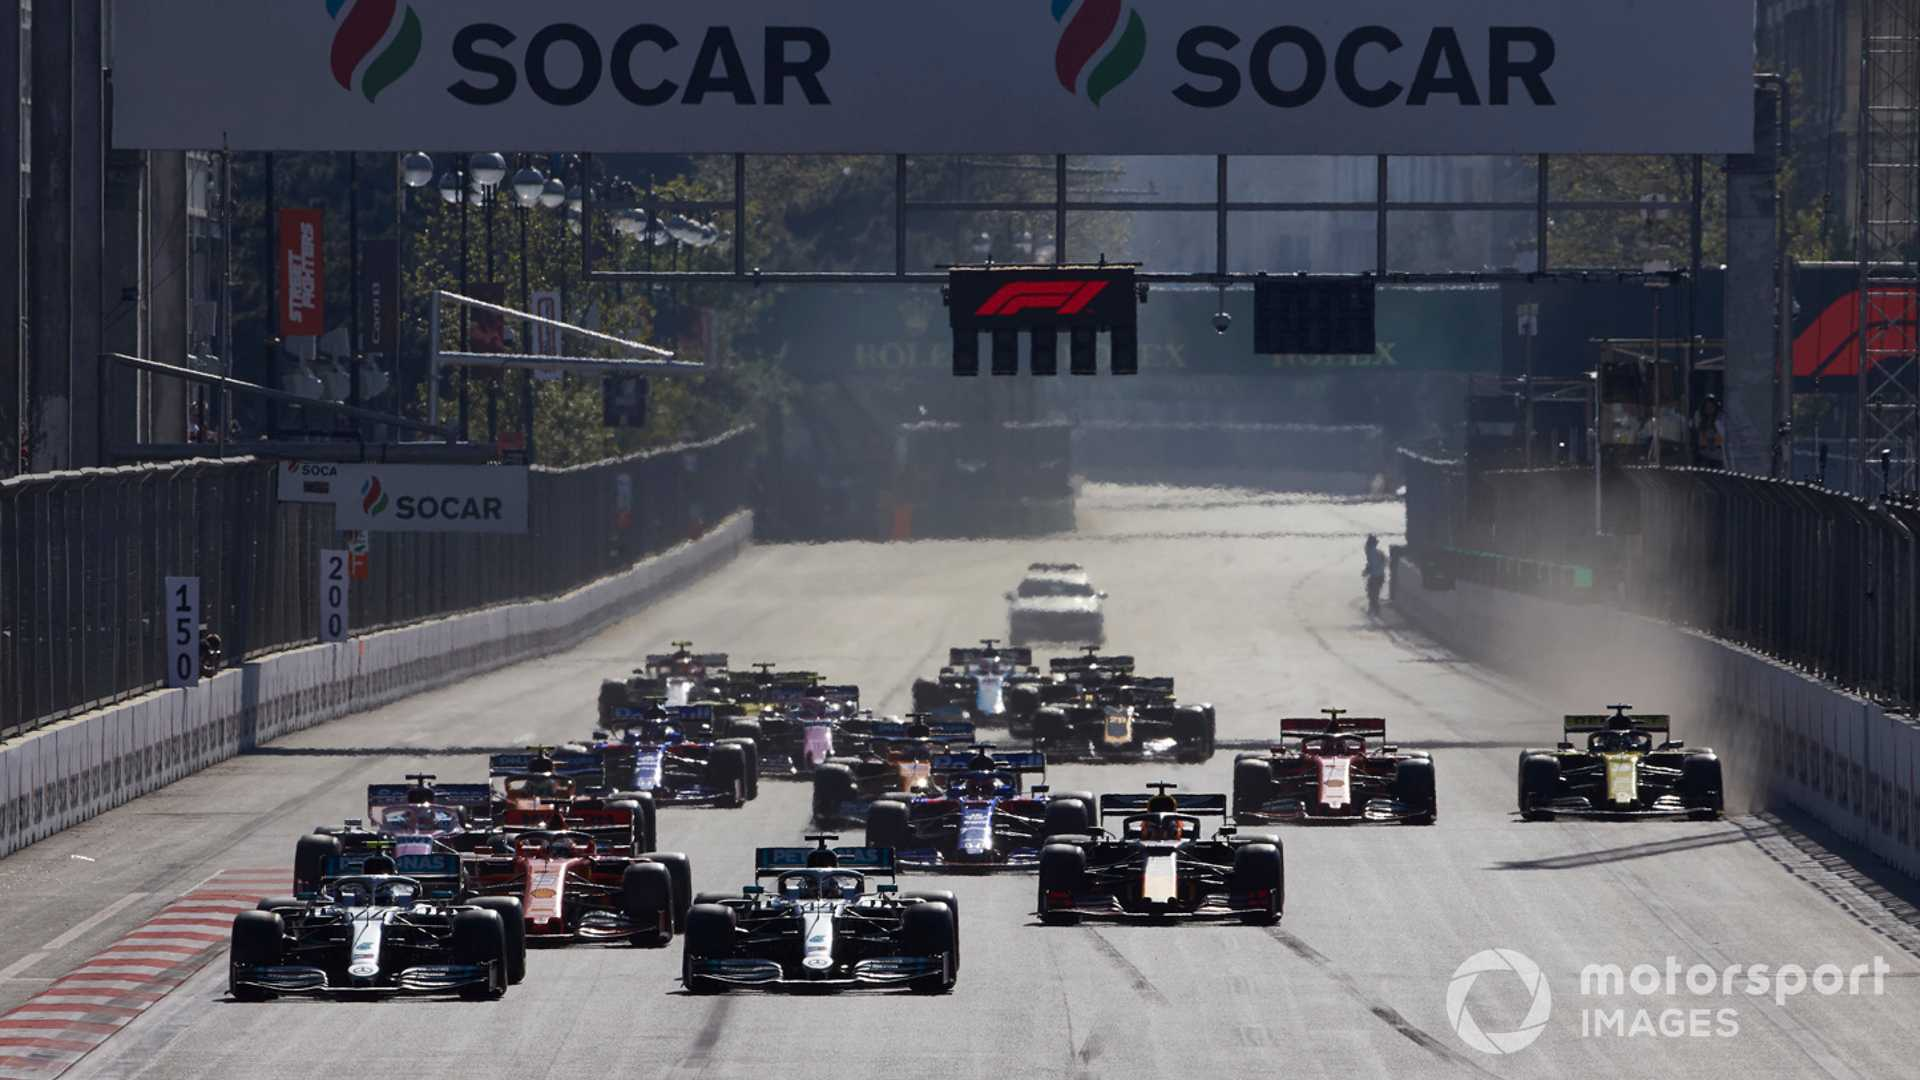 Azerbaijan GP claims $500m boost from hosting F1 race